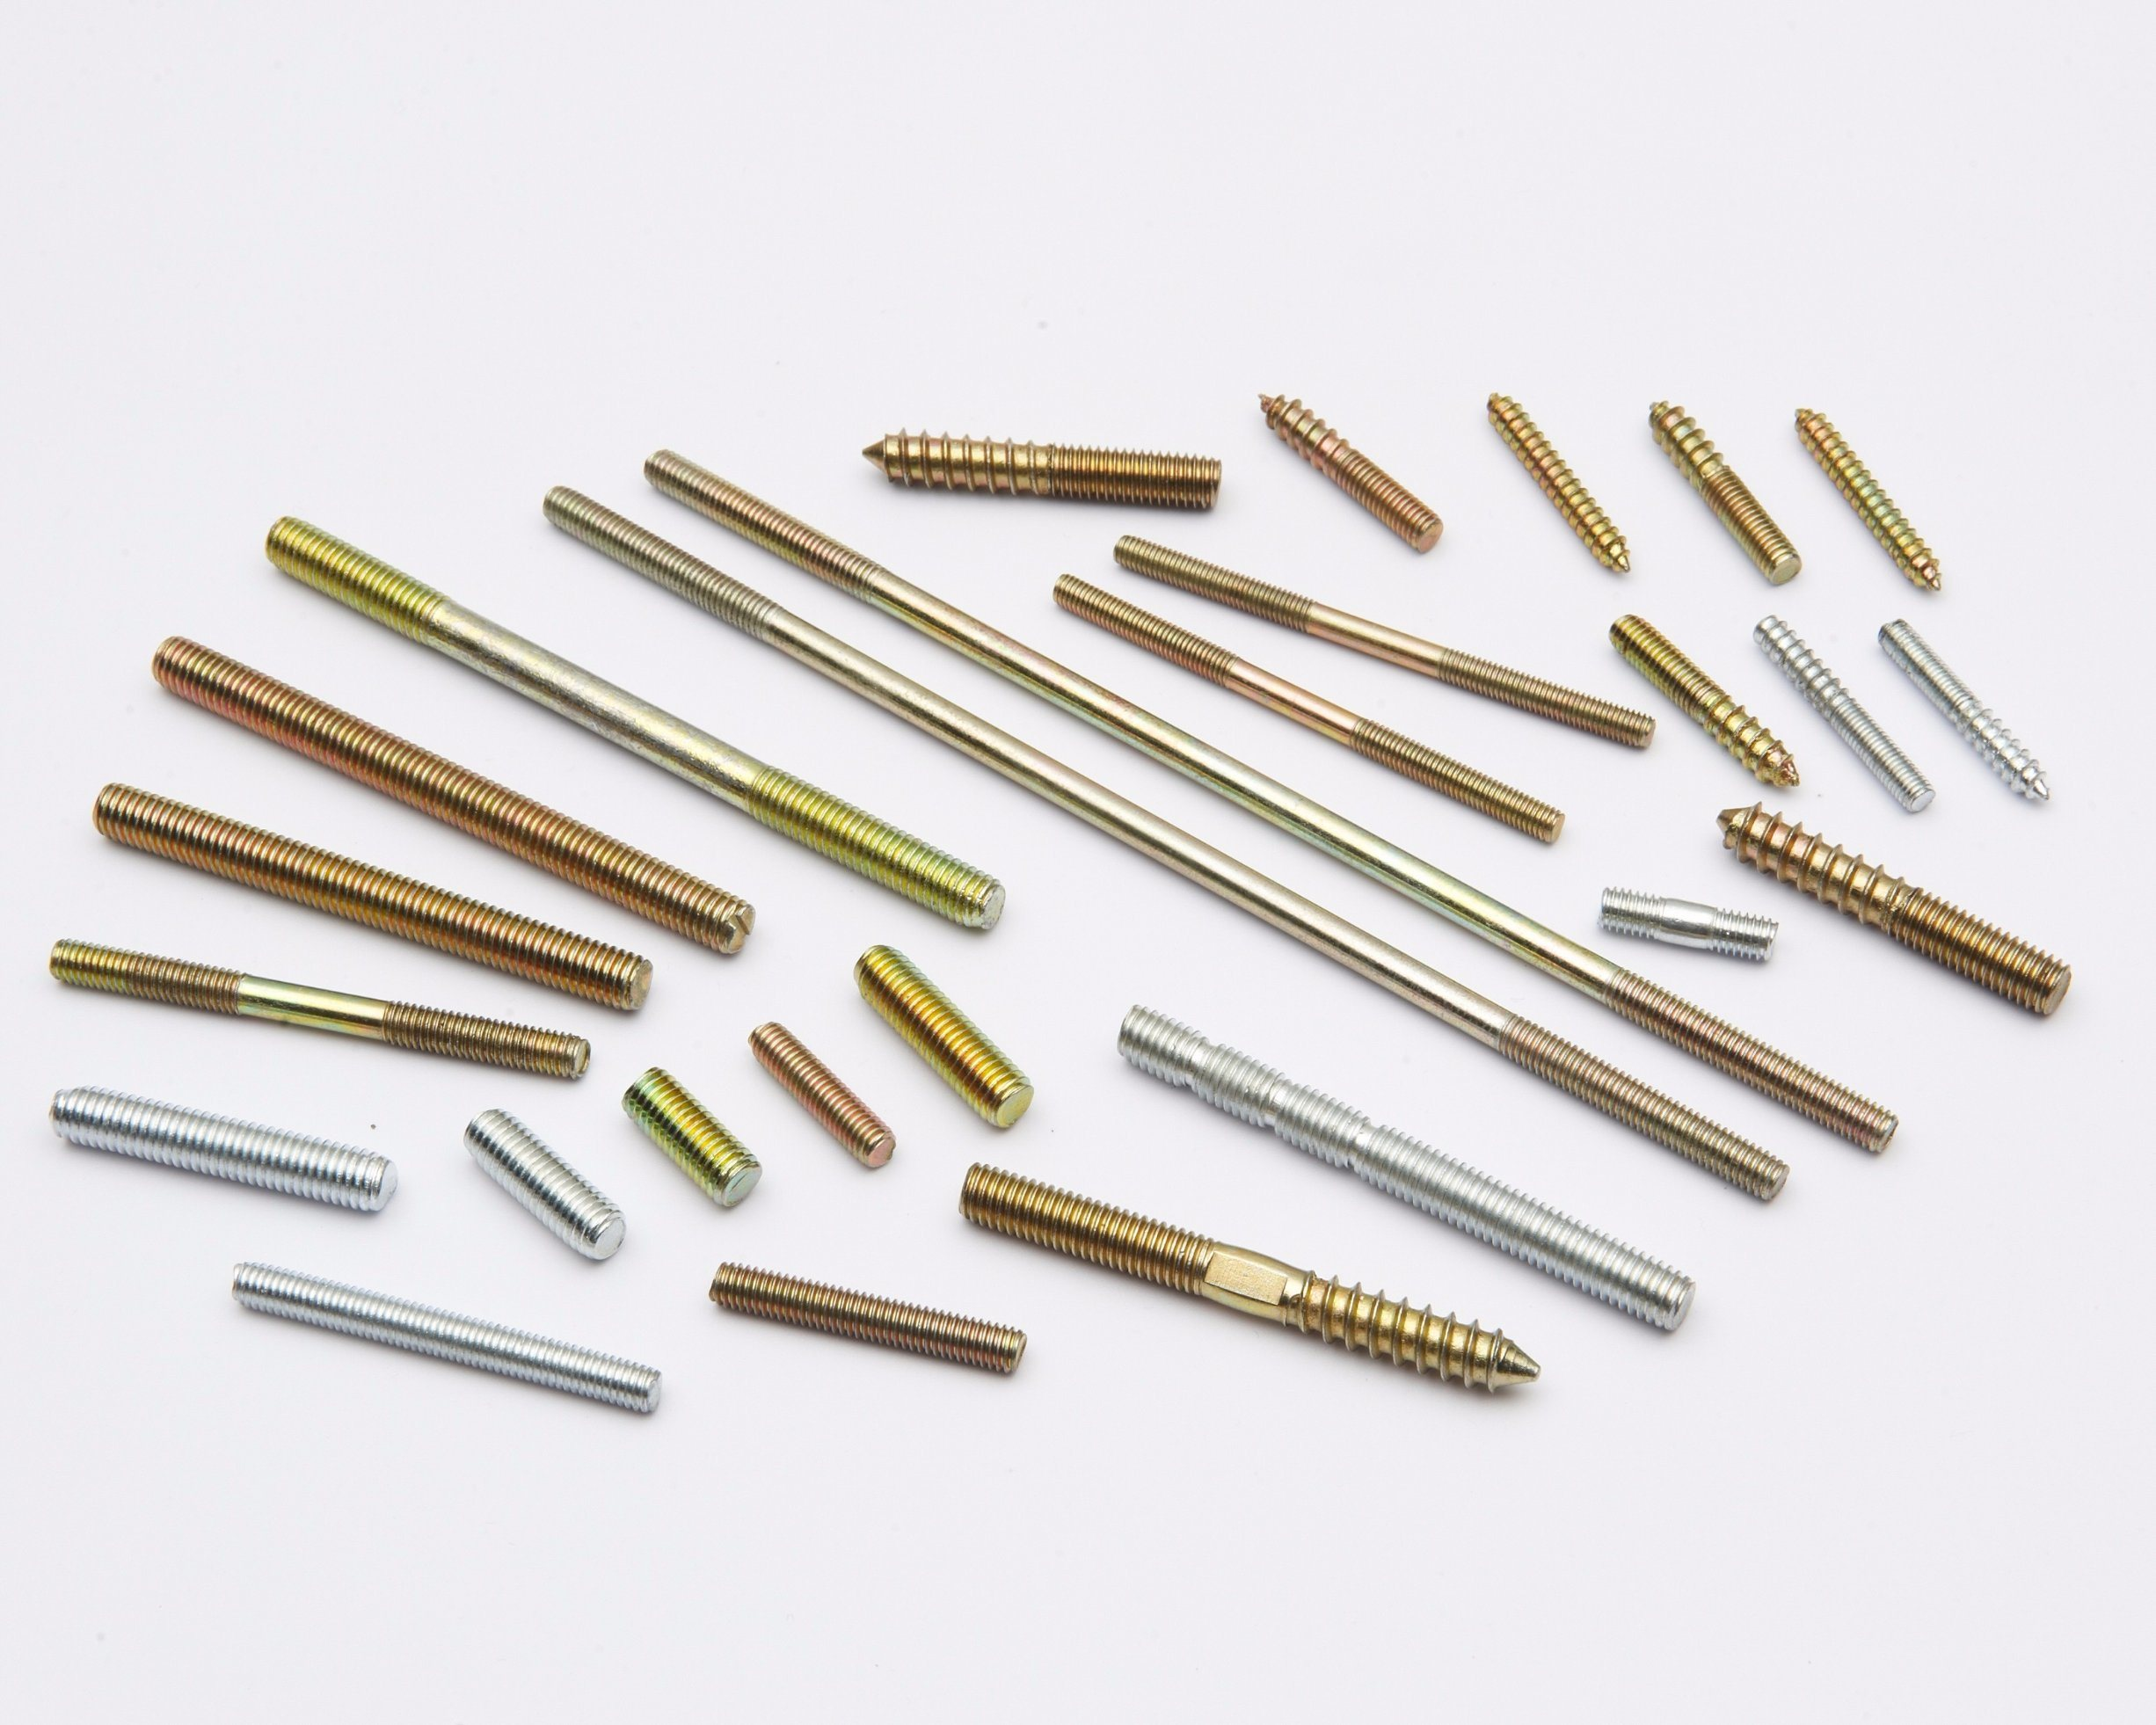 Square Head Bolt, OEM, High Strength, M6-M20, Carbon Steel